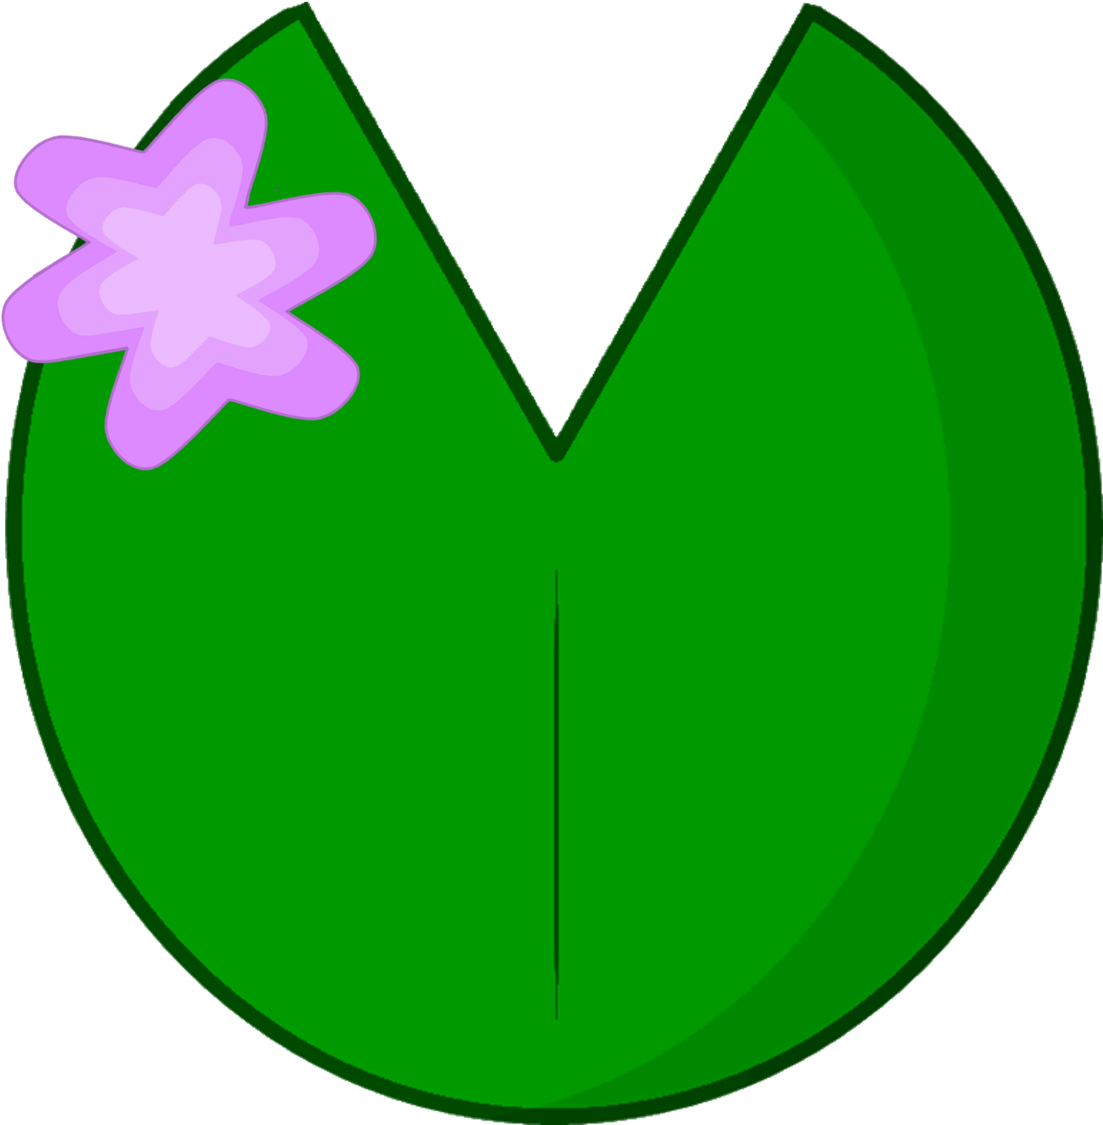 Lilypad drawing pen. Pad clipart for free